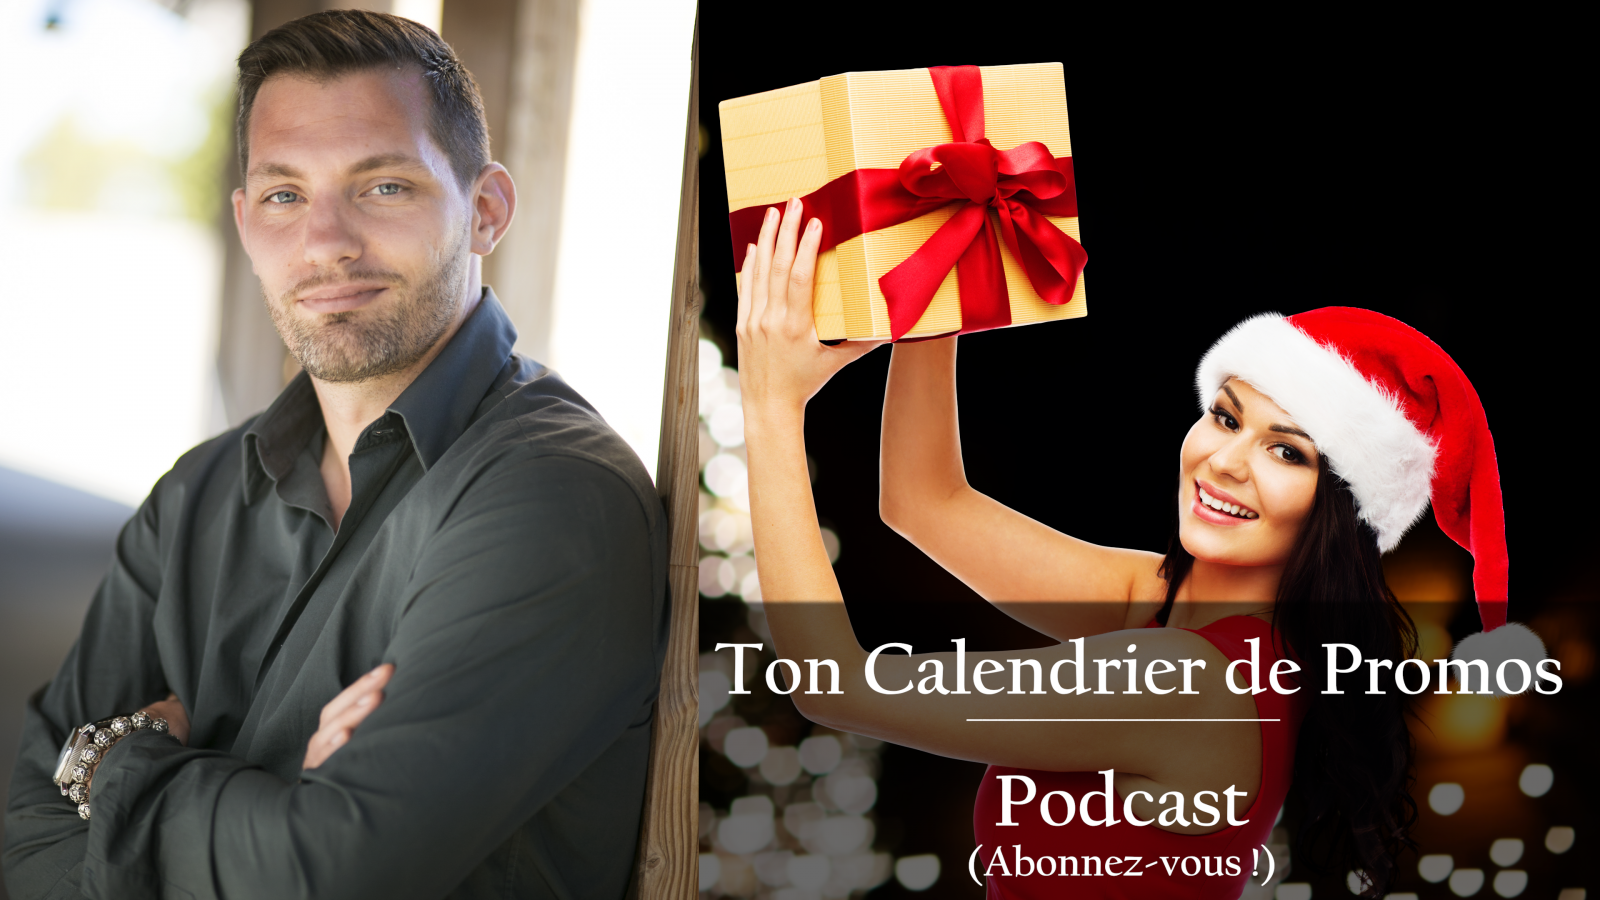 13eme Podcast - Business Web : Ton Calendrier de Promotions?